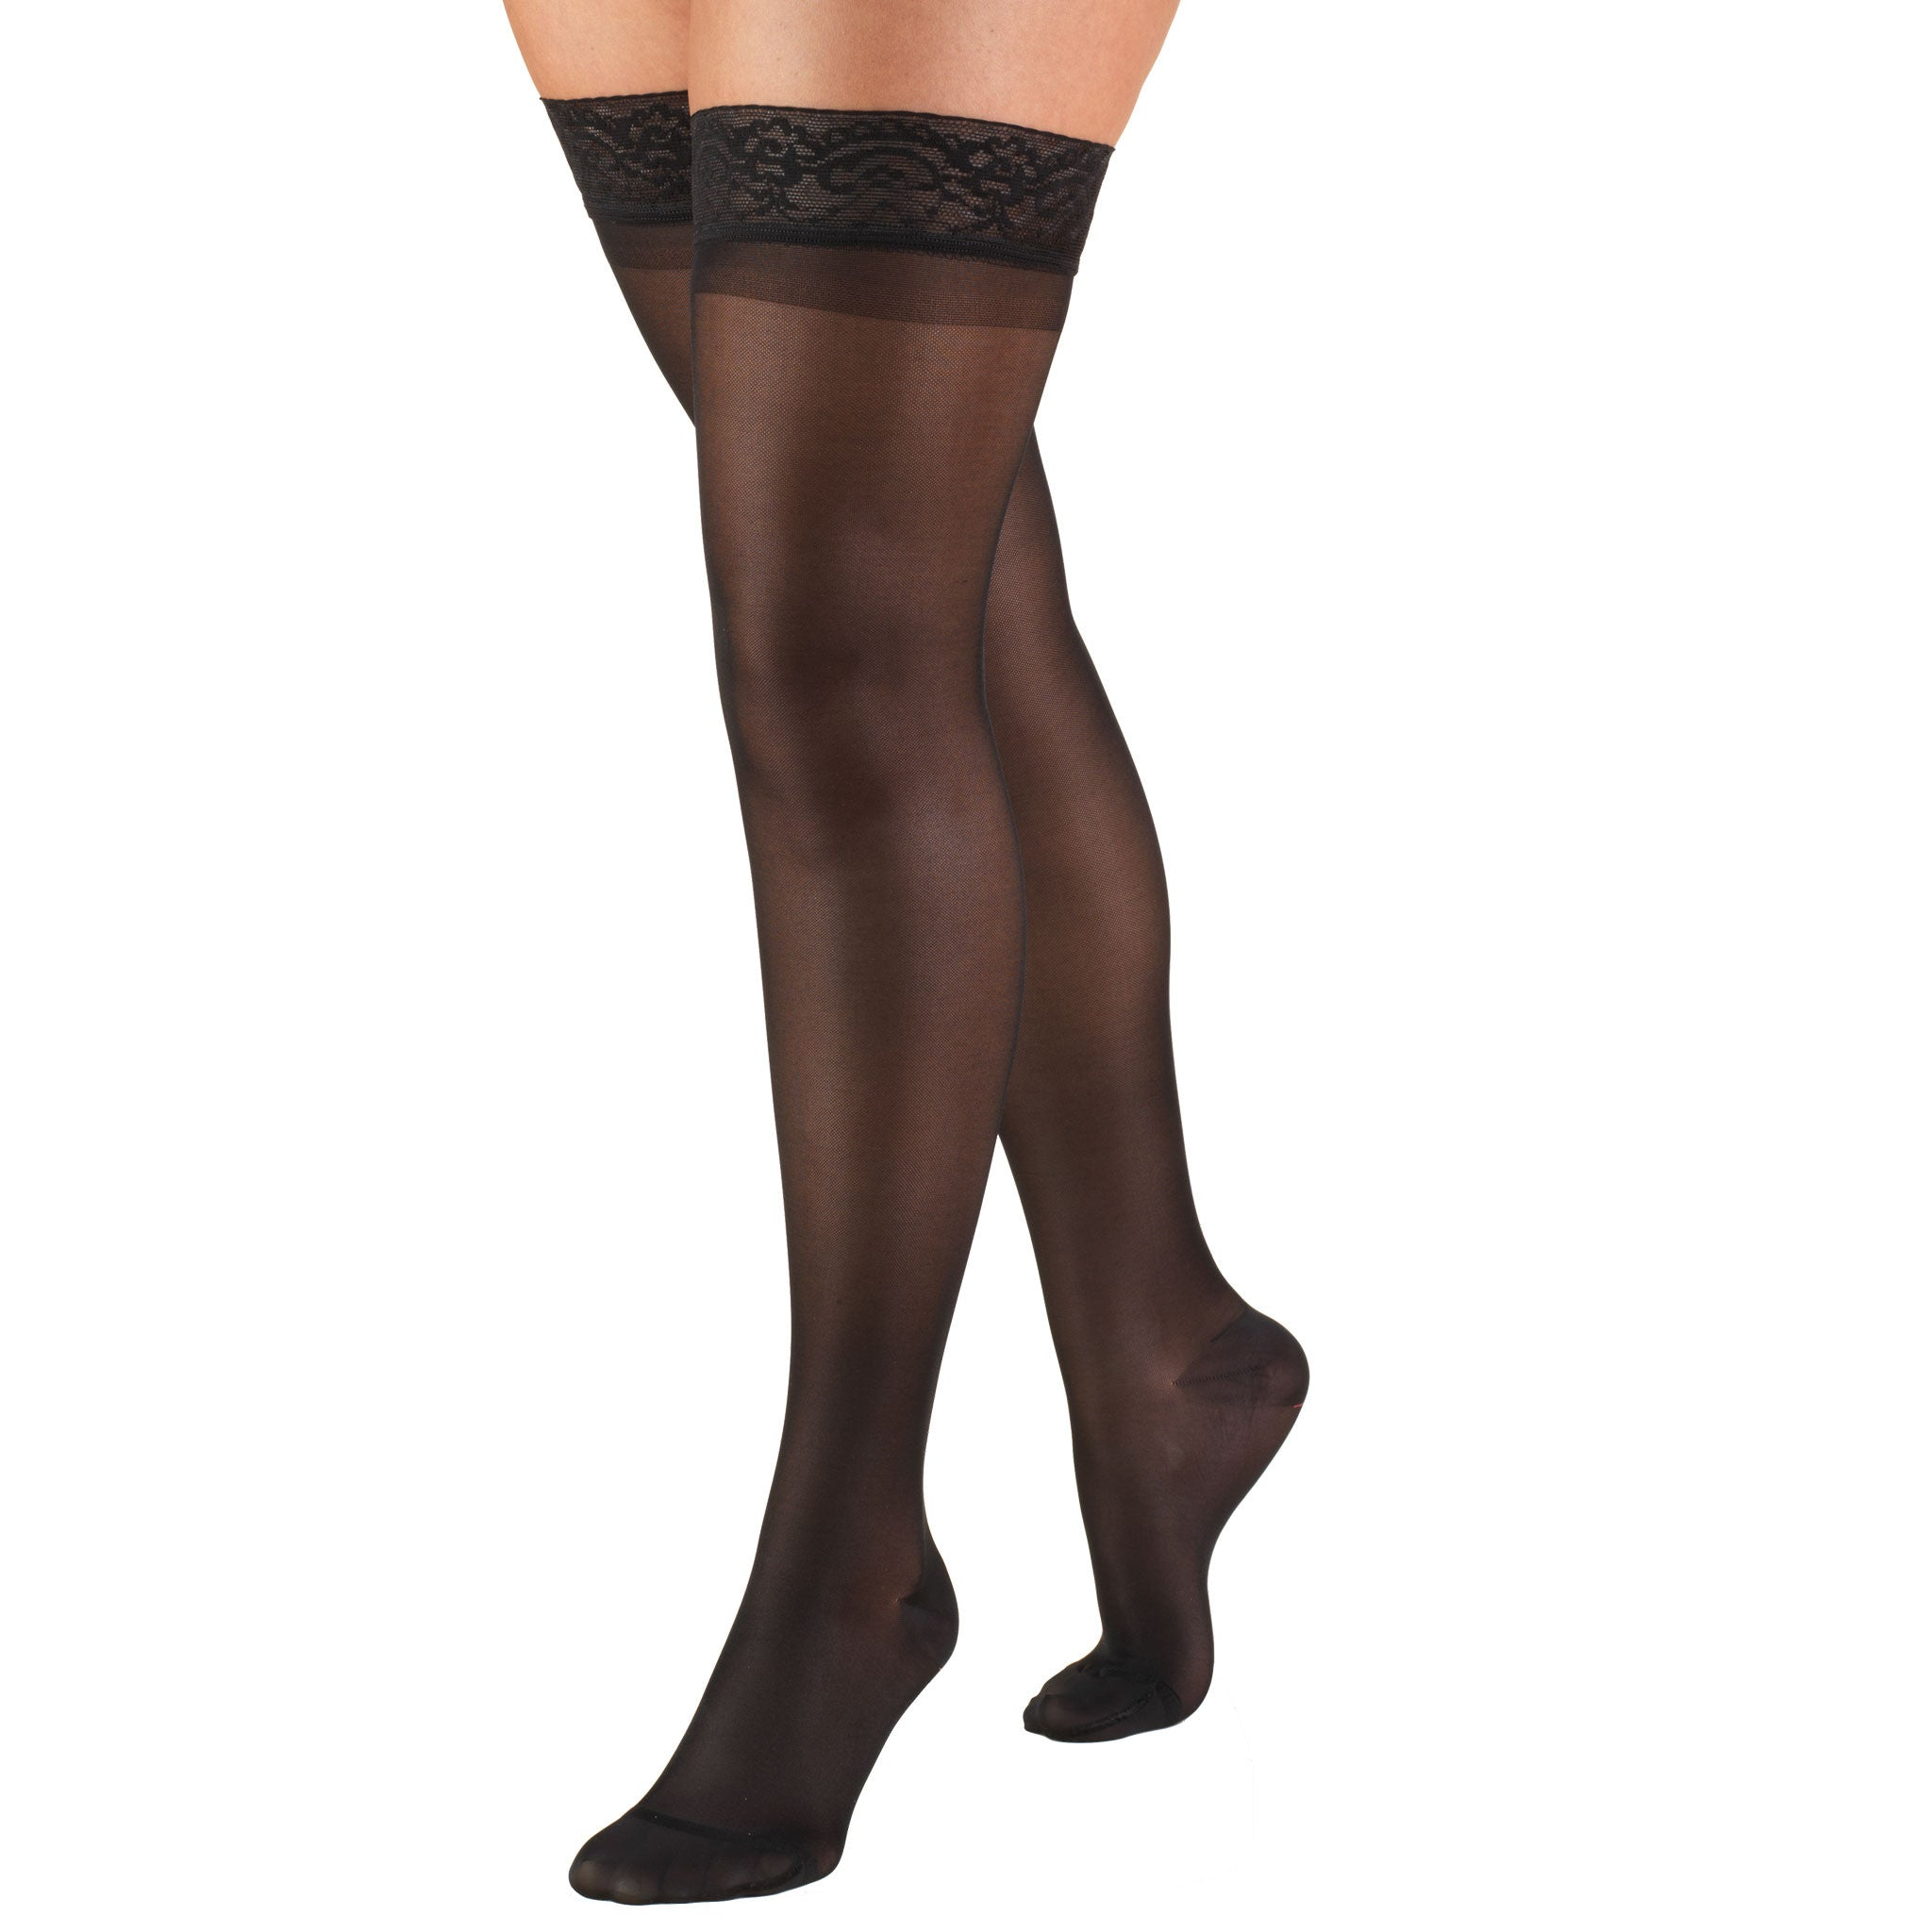 1774 Ladies' Thigh High Closed Toe Black Pattern Sheer Stocking